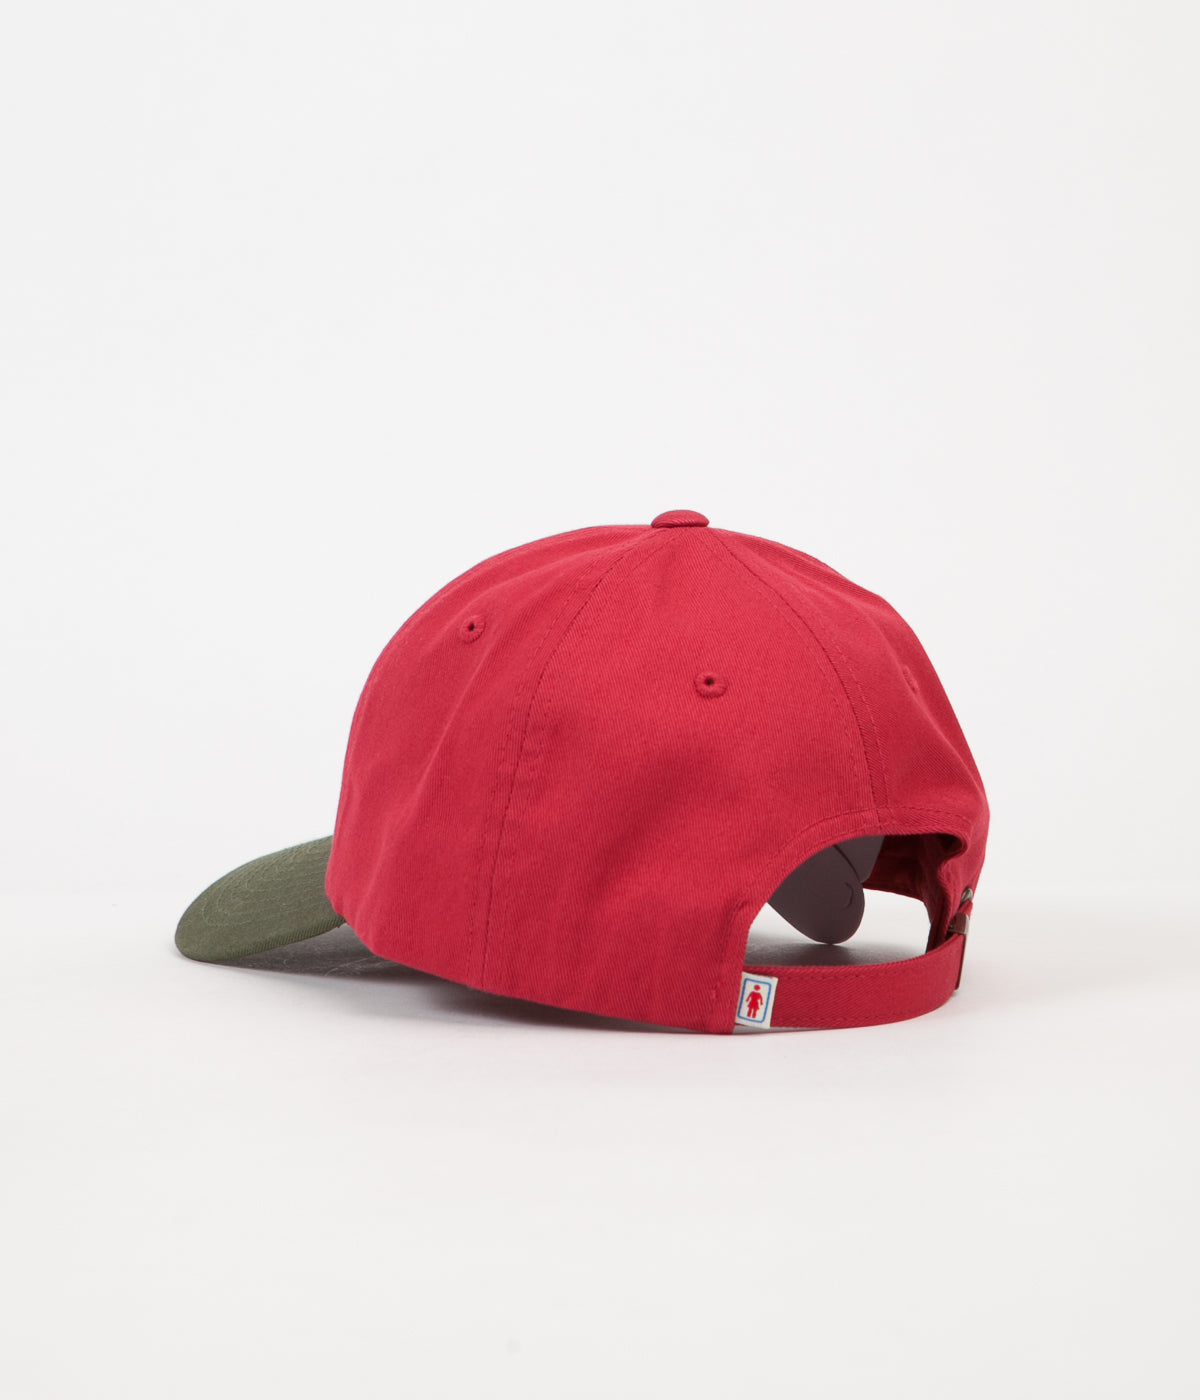 Girl Micro OG Strapback Cap - Red / Green